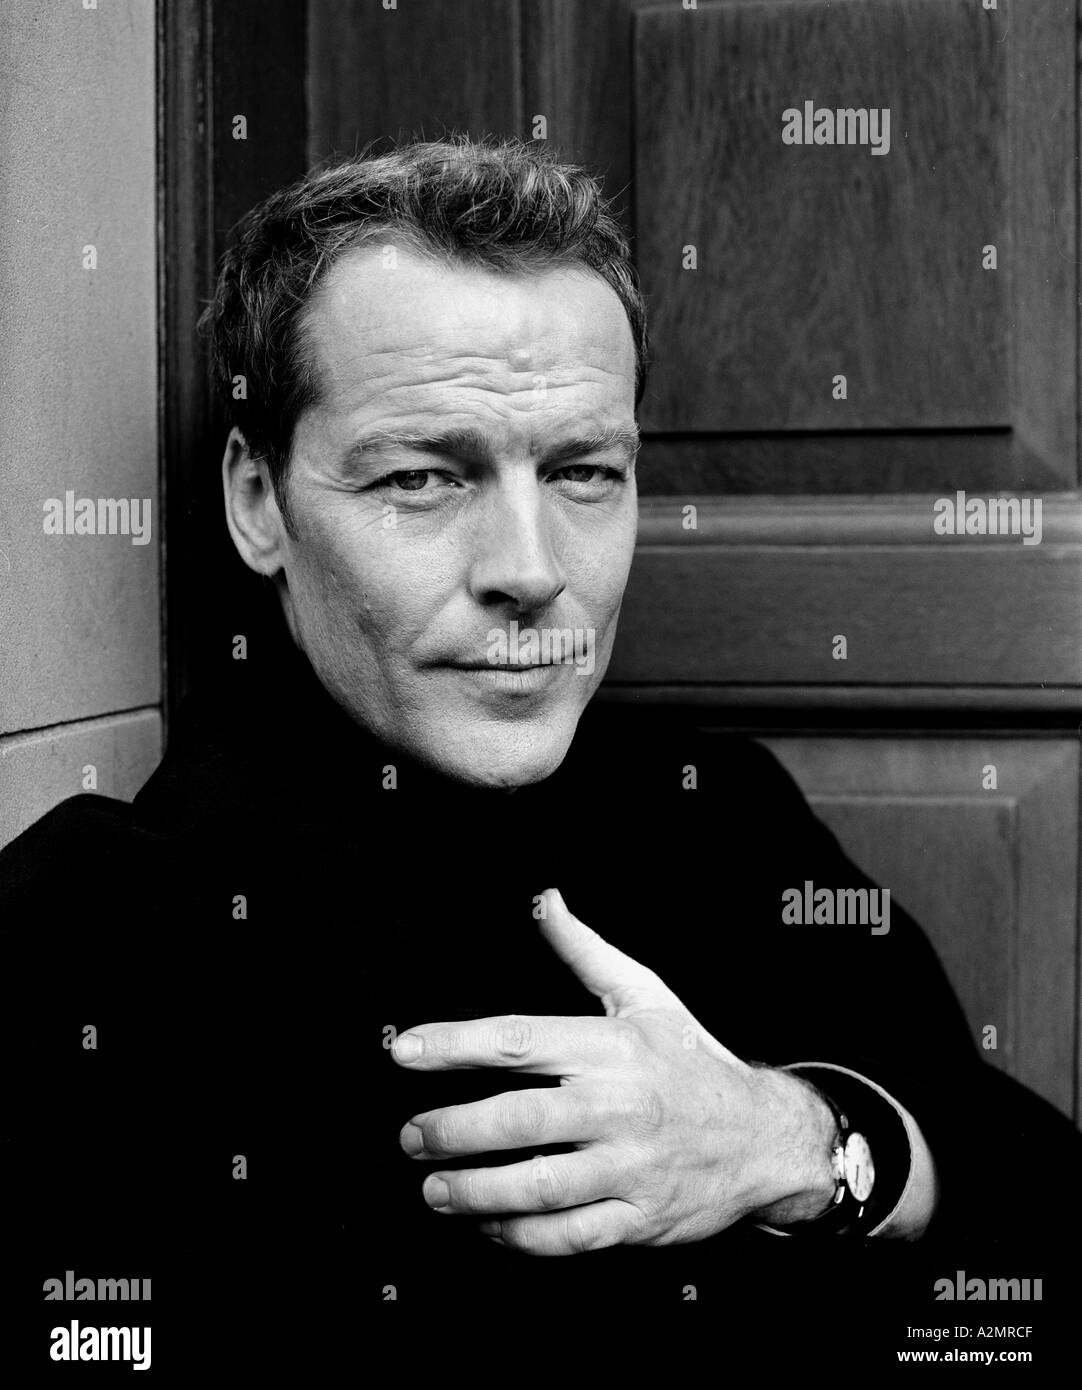 Iain Glen. Scottish film and television actor - Stock Image